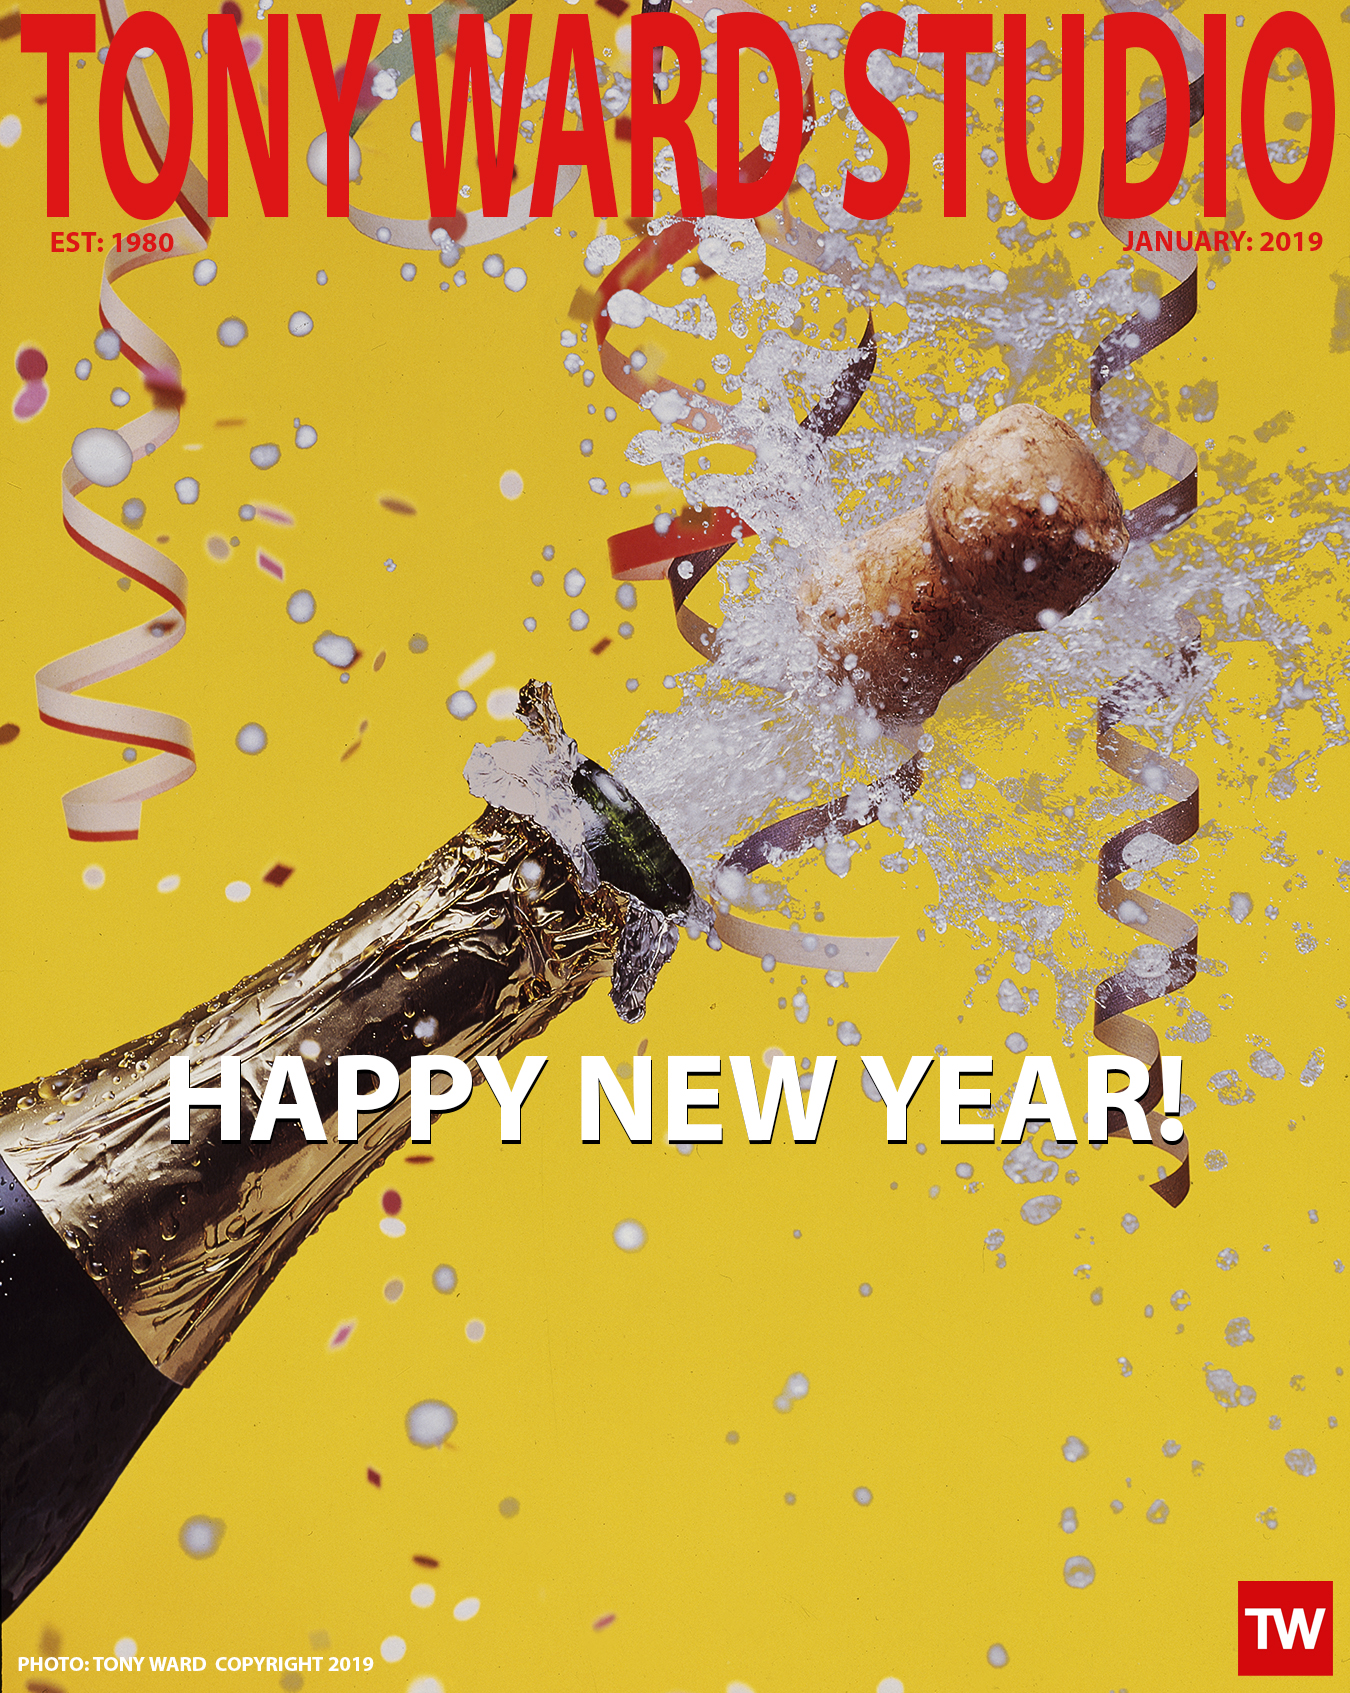 Tony_Ward_Studio_Happy_New_Year_2019_champaign_